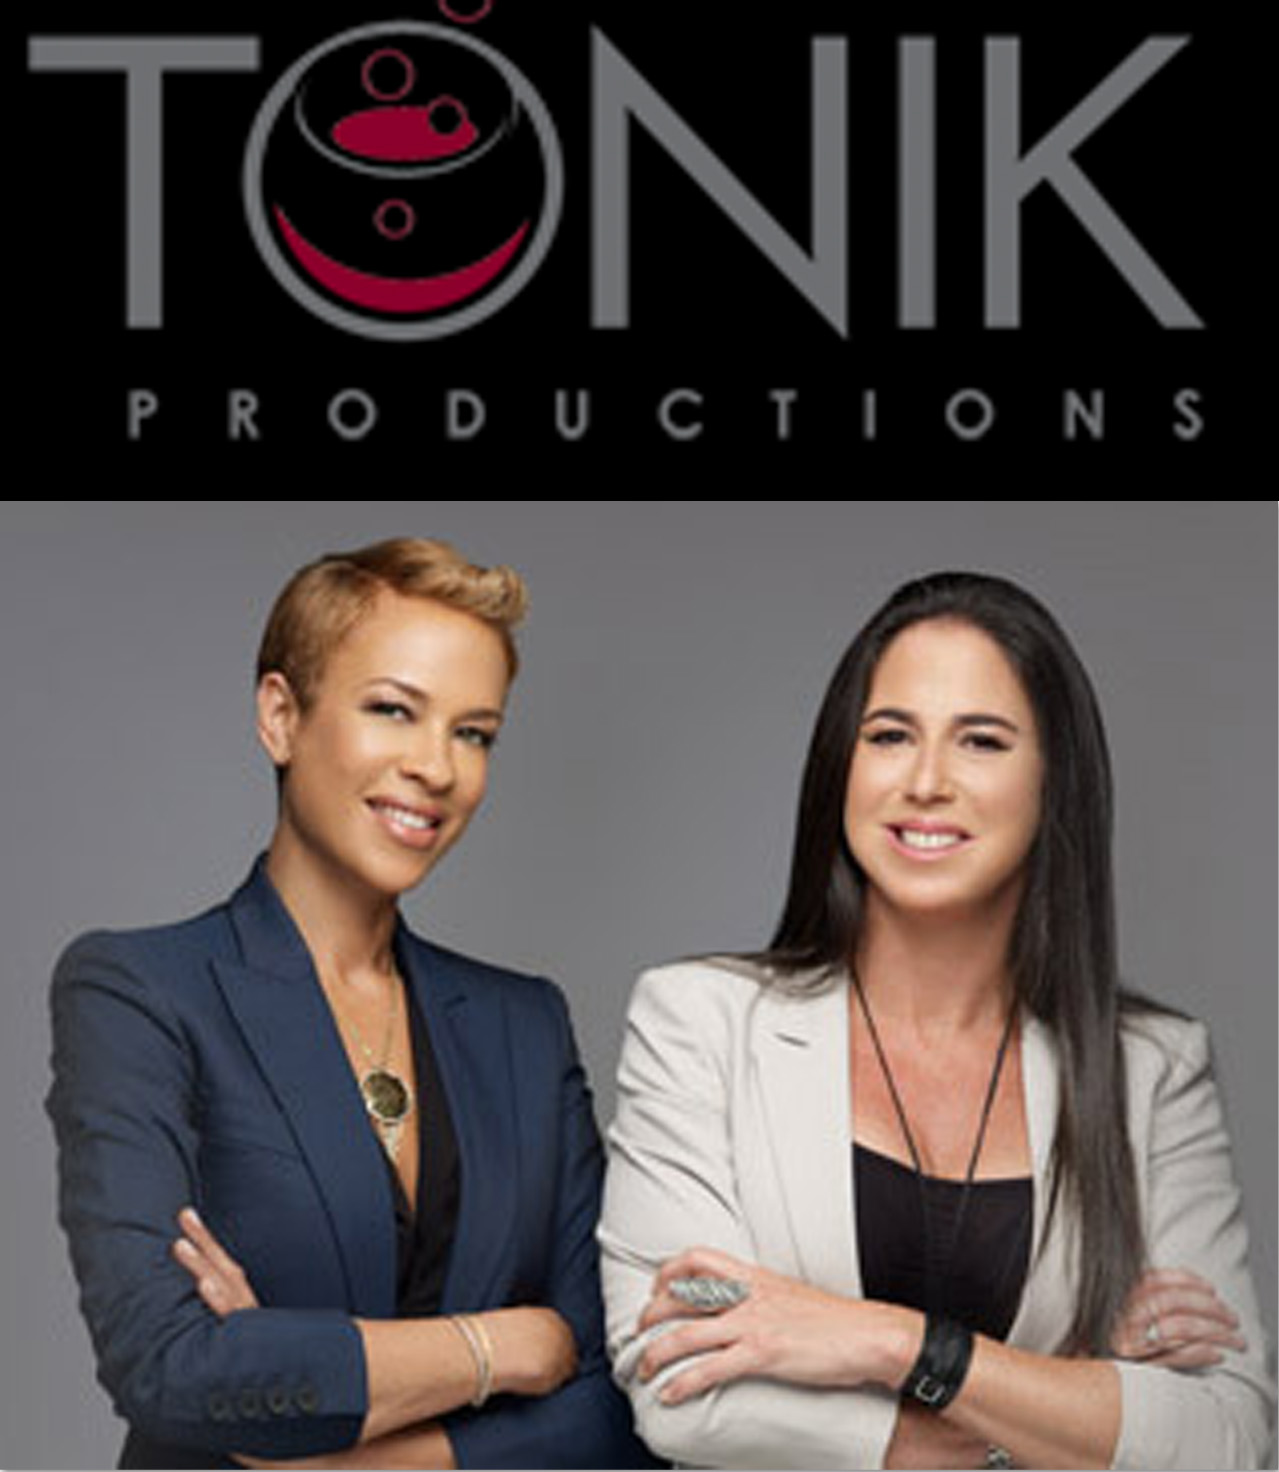 ToniK Productions Nikki Silver and Tonya Lewis Lee